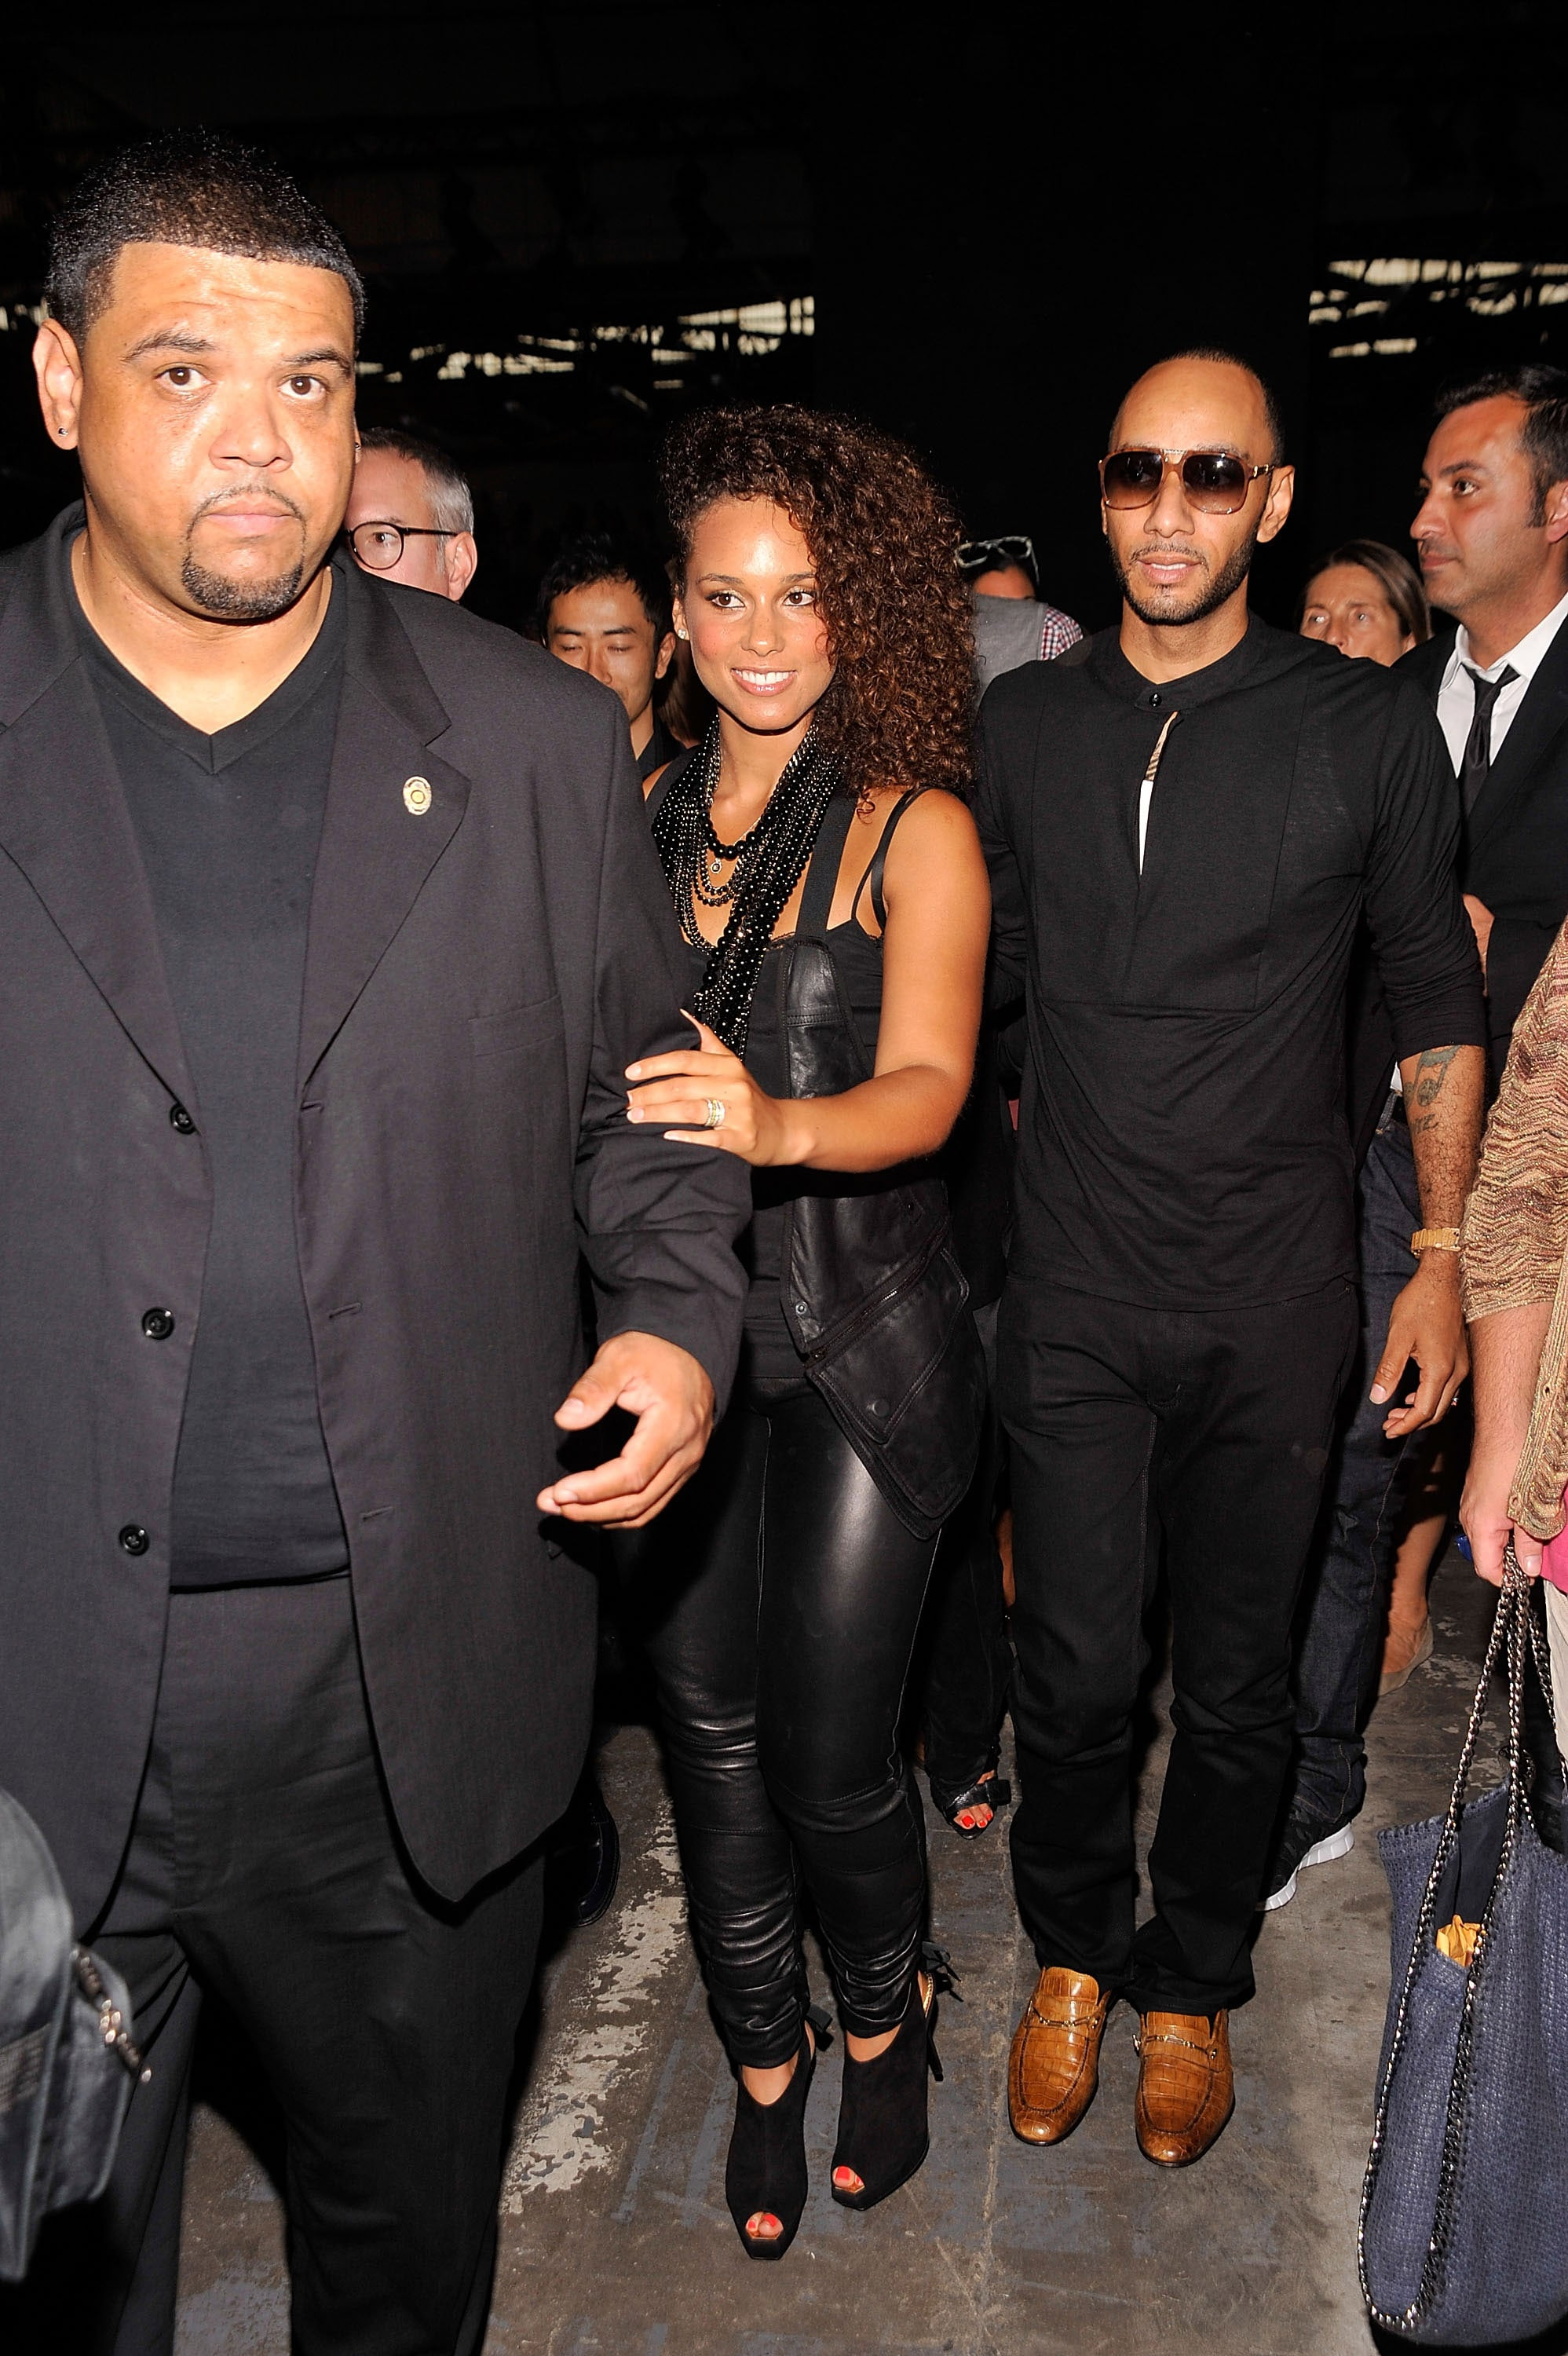 Alicia Keys and Swizz Beatz at Alexander Wang.